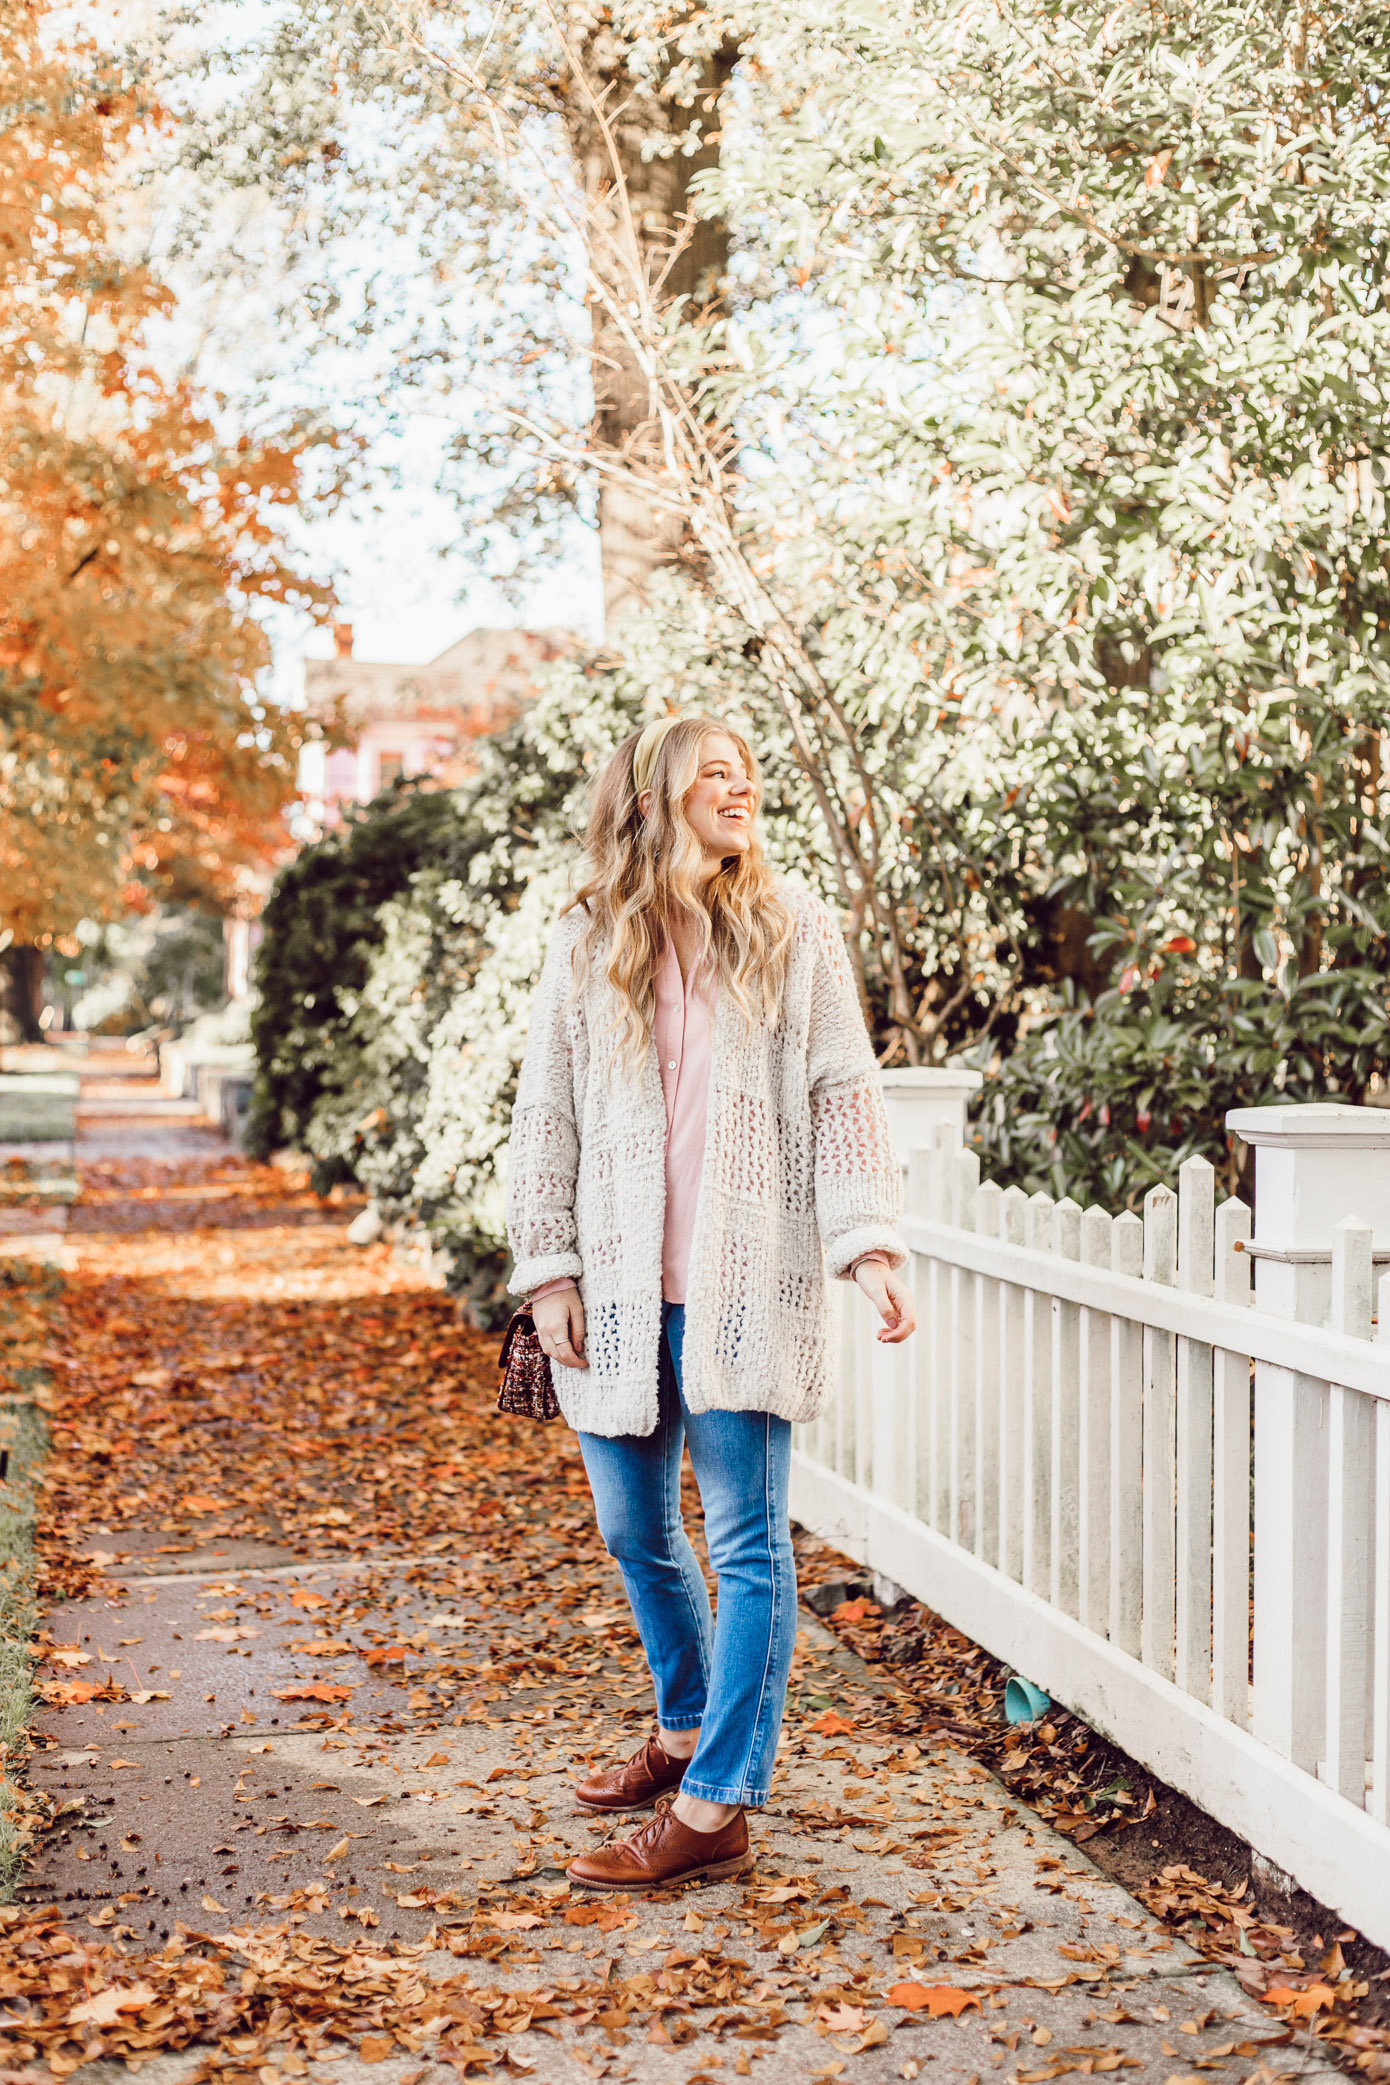 No Fail Thanksgiving Outfit, Casual Fall Outfit | Free People Saturday Morning Cardigan featured on Louella Reese Life & Style Blog